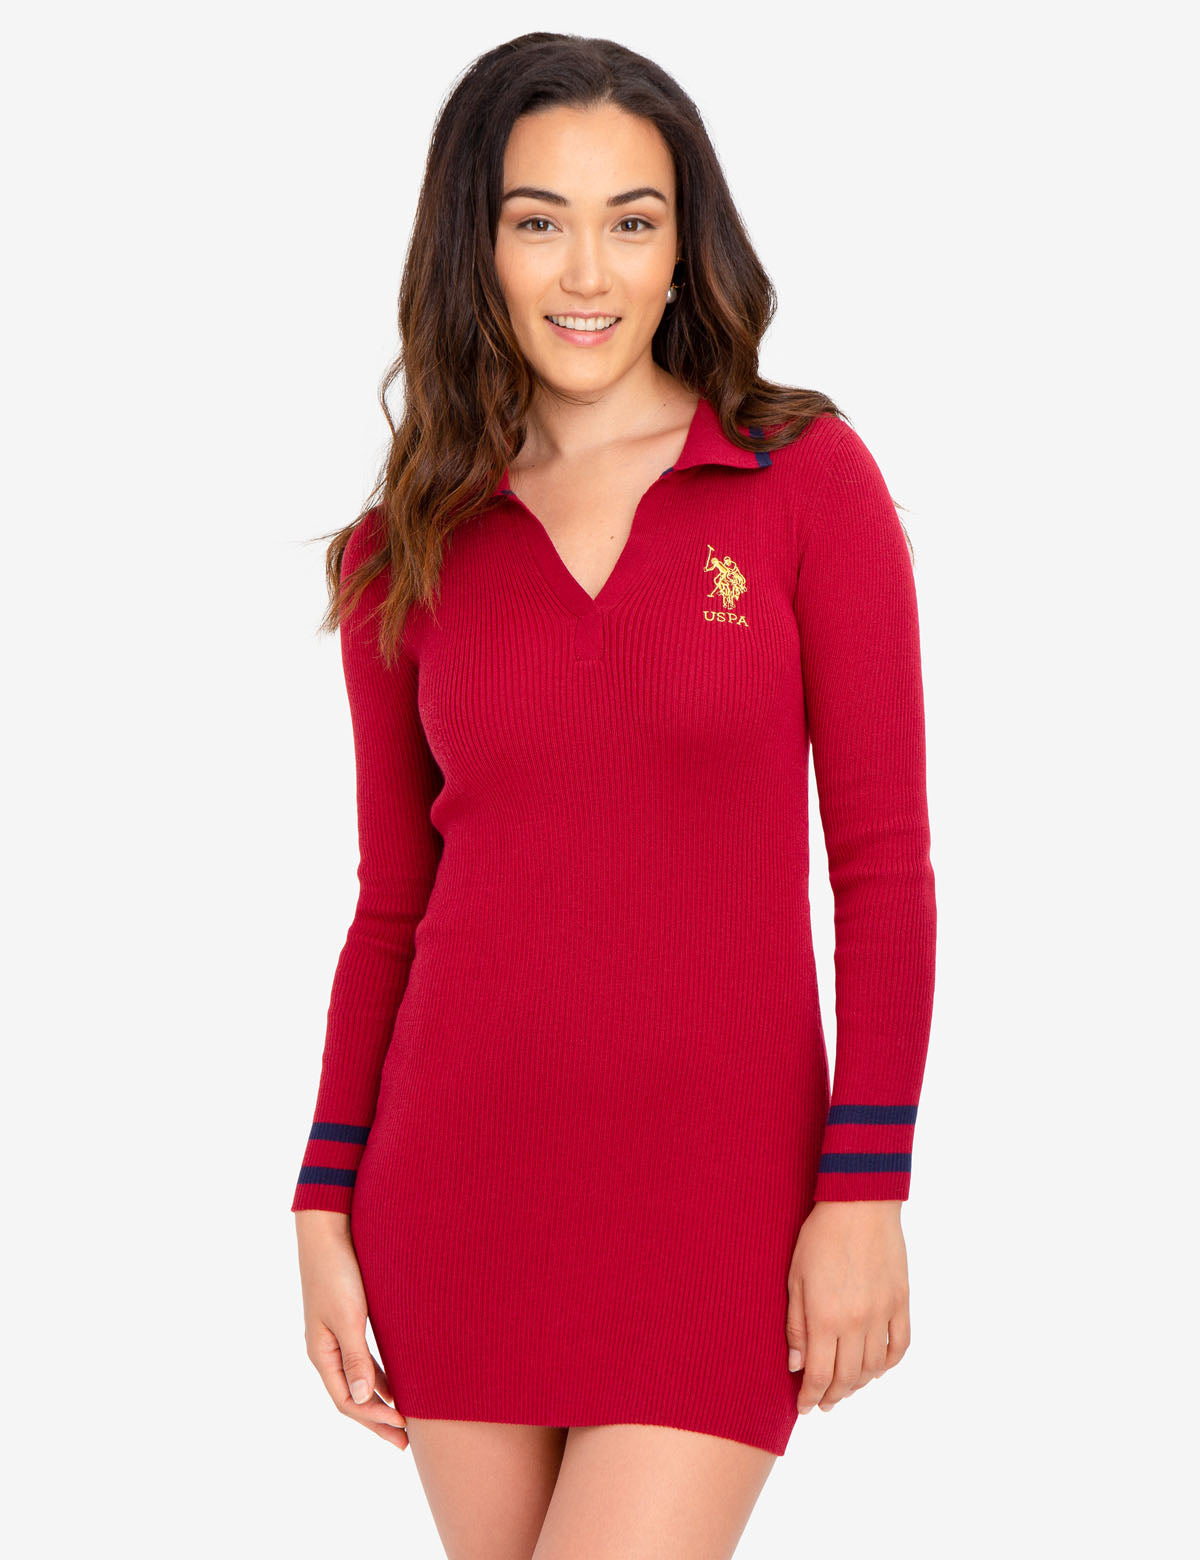 RED SWEATER DRESS WITH GOLD LOGO